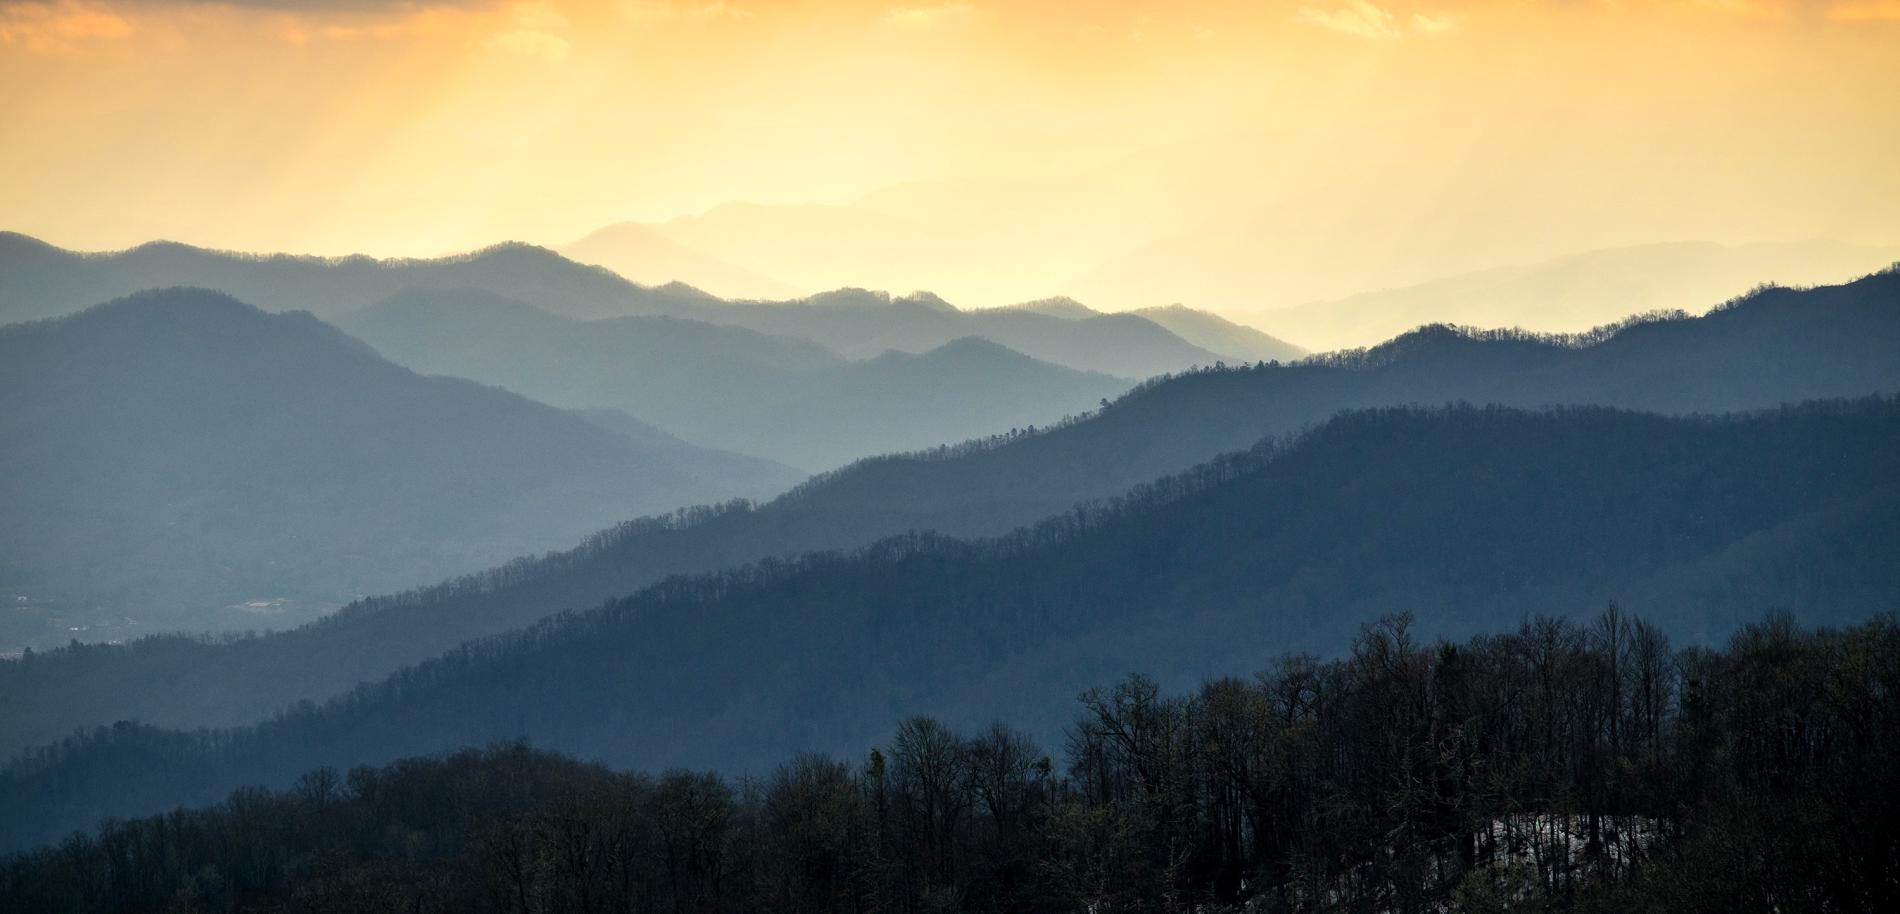 great-smoky-mountains-national-park-mountains-sunset.adapt.1900.1.jpg